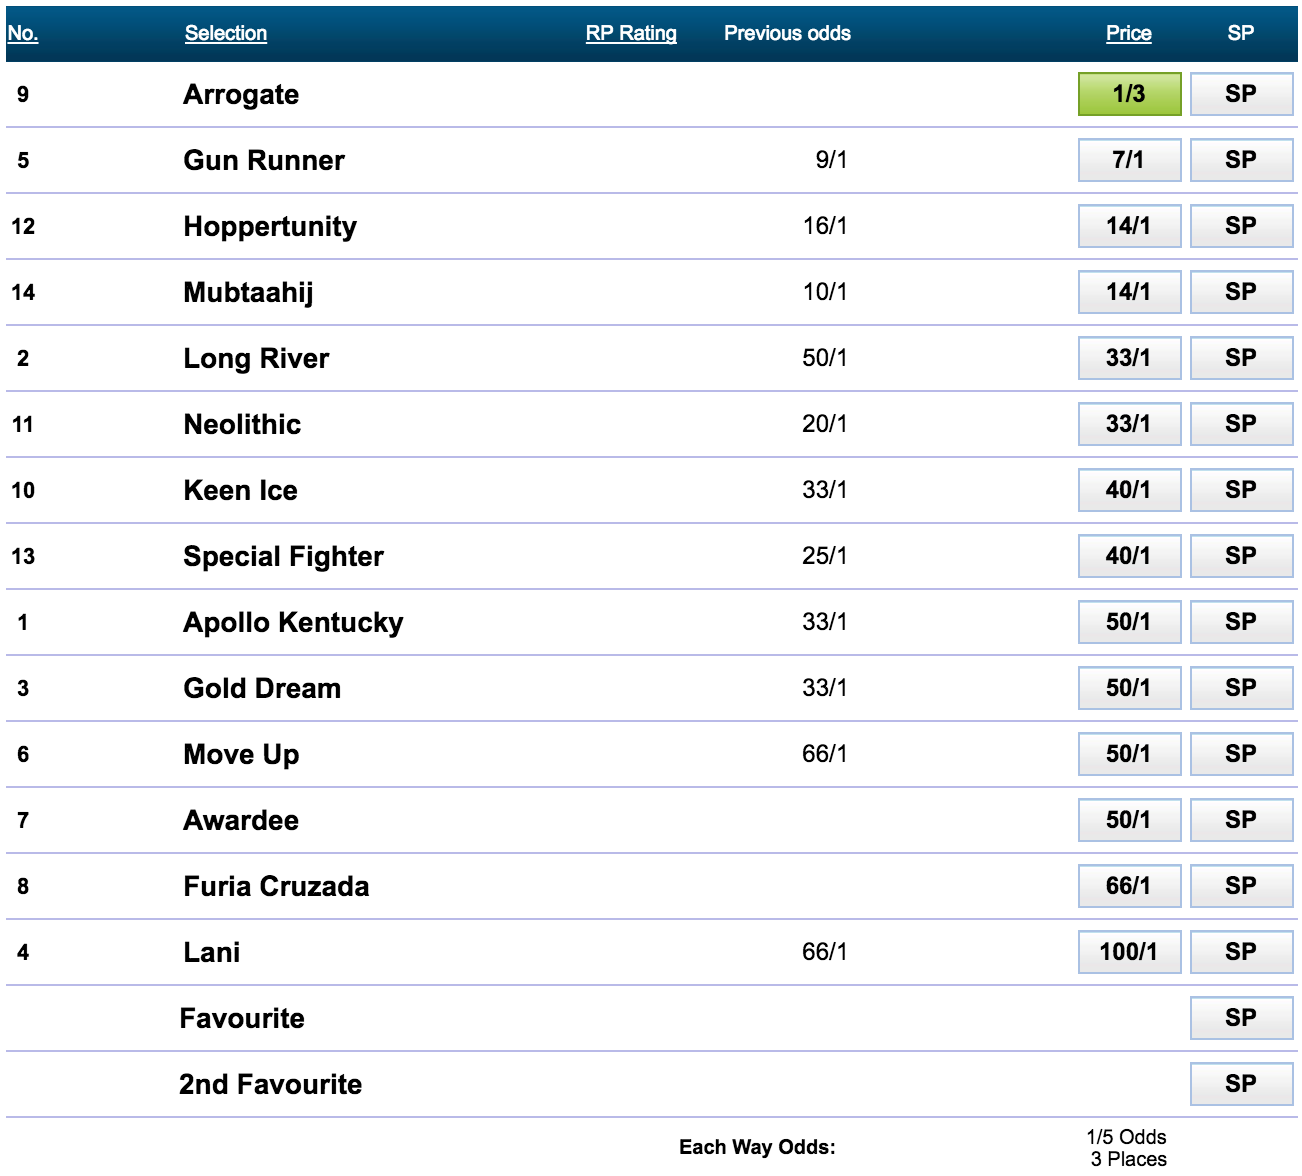 Dubai World Cup Odds at WilliamHill 2017